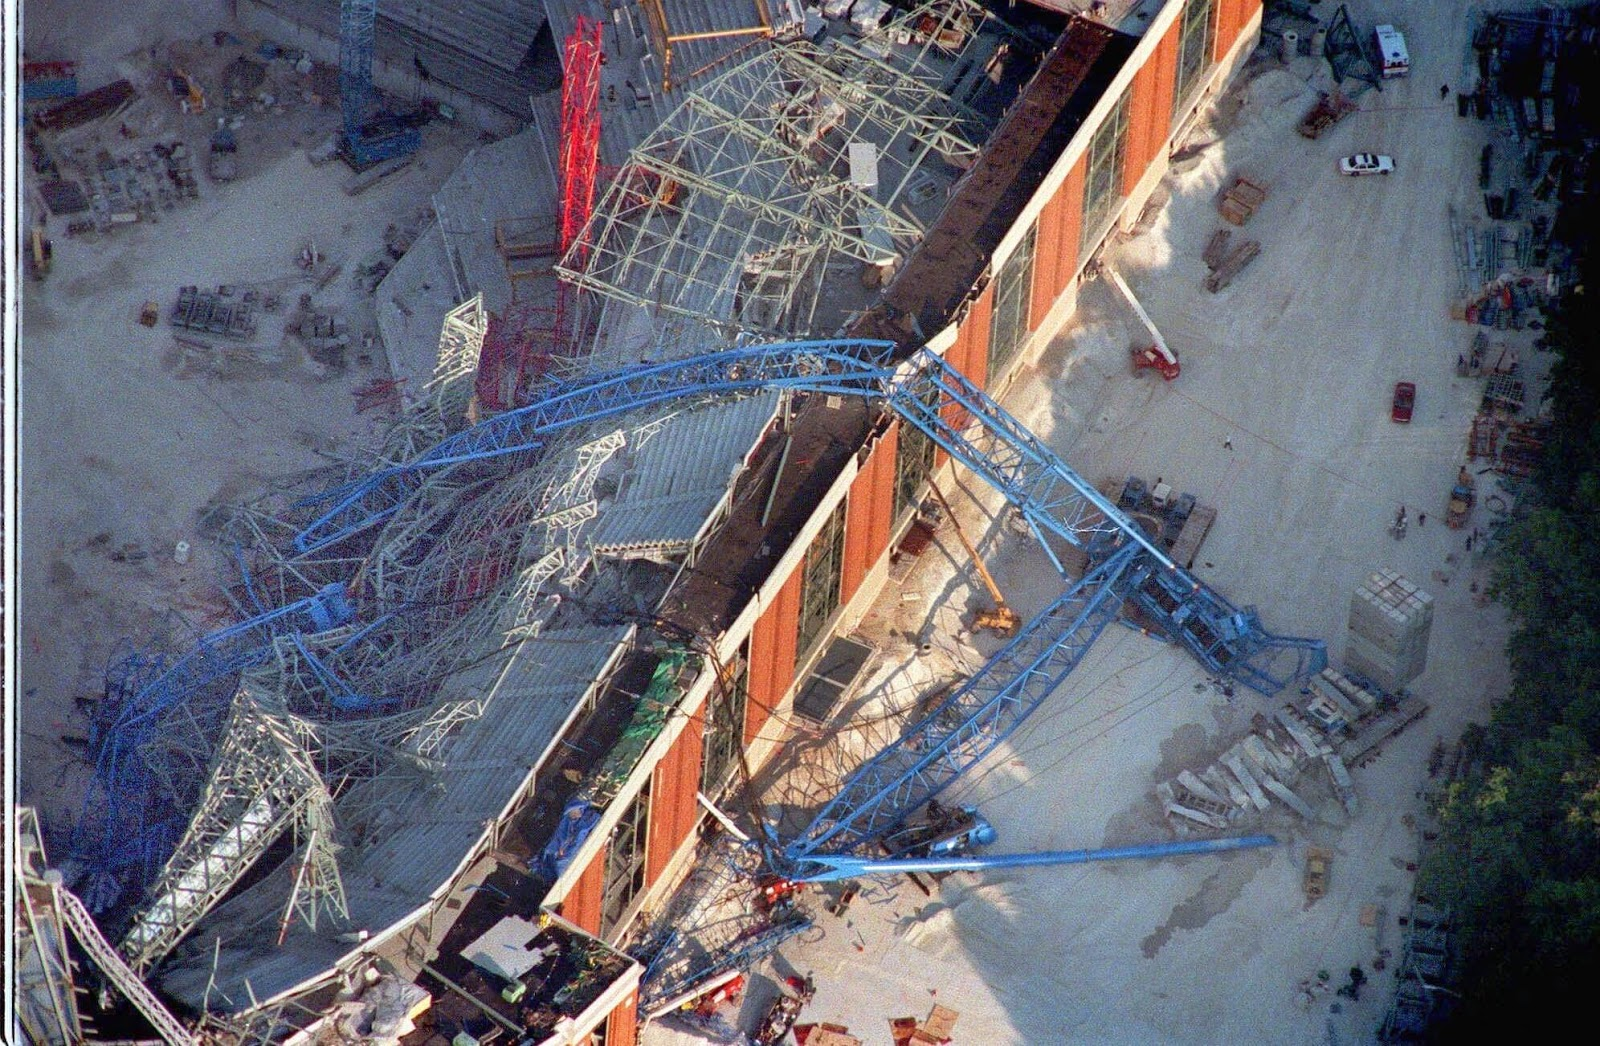 the reasons for the big blue collapse of 1999 Today we're going to point our skeptical eye, once again, at the events of september 11, specifically at world trade center 7, the building that collapsed after the twin towers for no apparent reason, in a manner consistent with a controlled demolition we're entering the weird wild and wacky world.